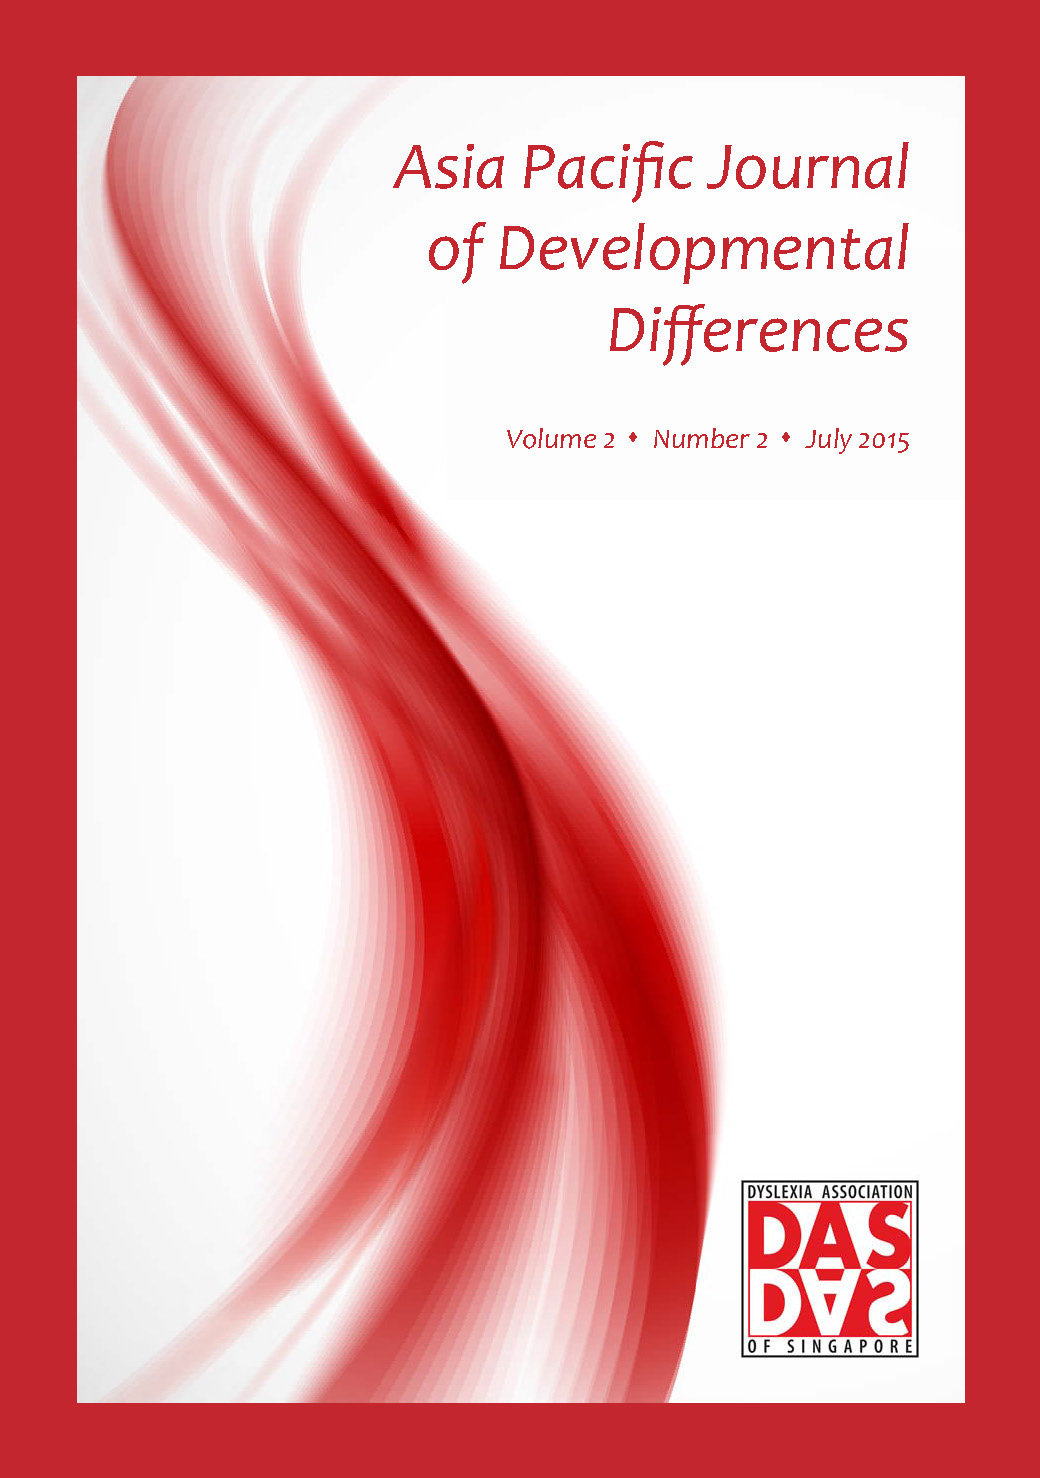 APJDD Vol 2 No 2 (July 2015)